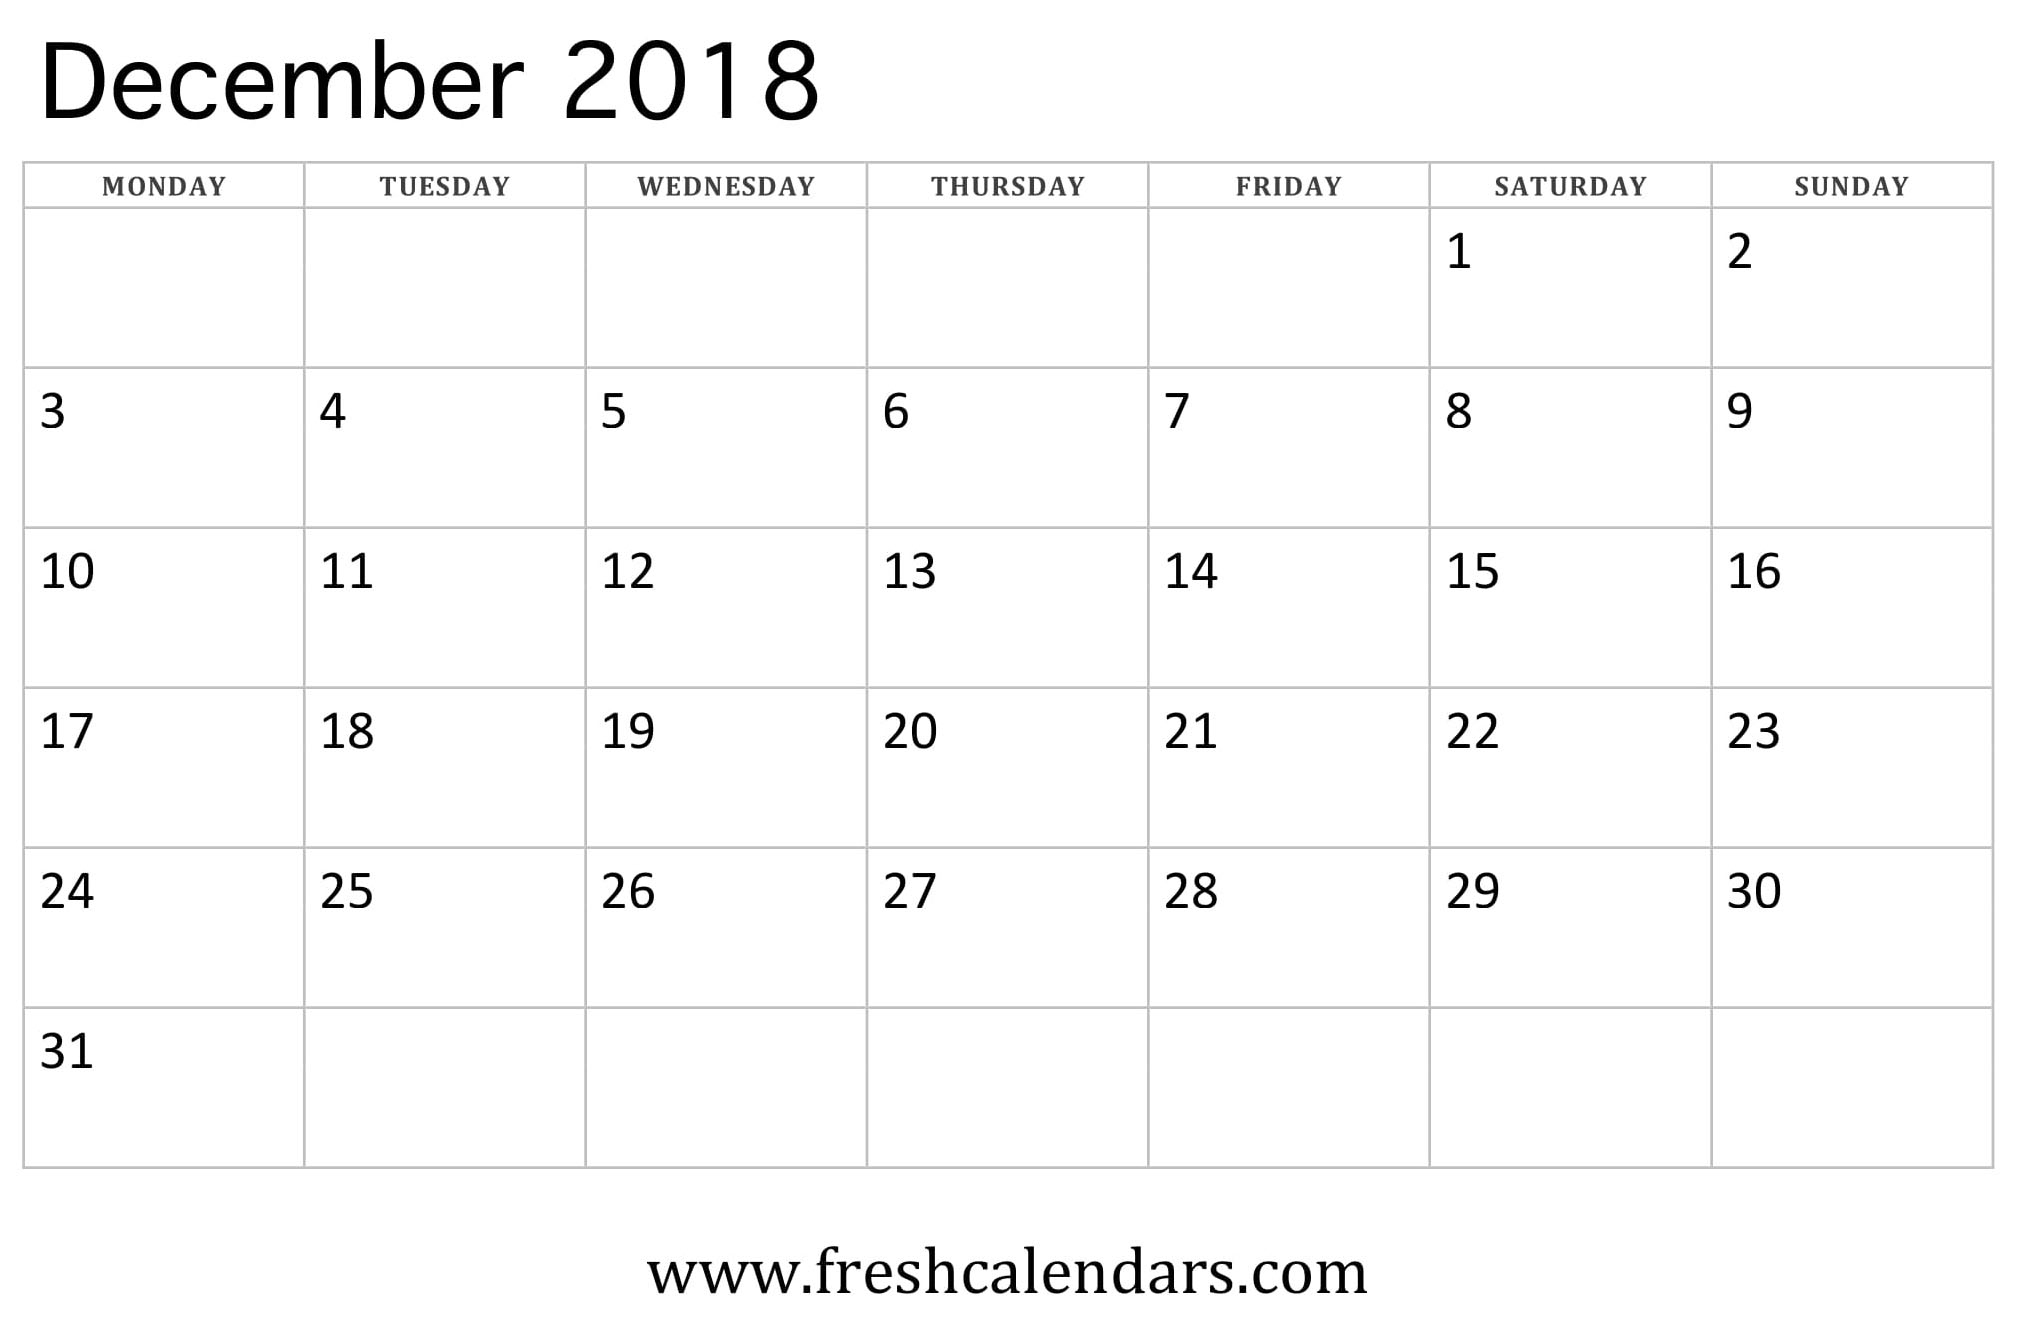 December 2018 Calendar Printable - Fresh Calendars intended for Blank Monthly Calendar Dec